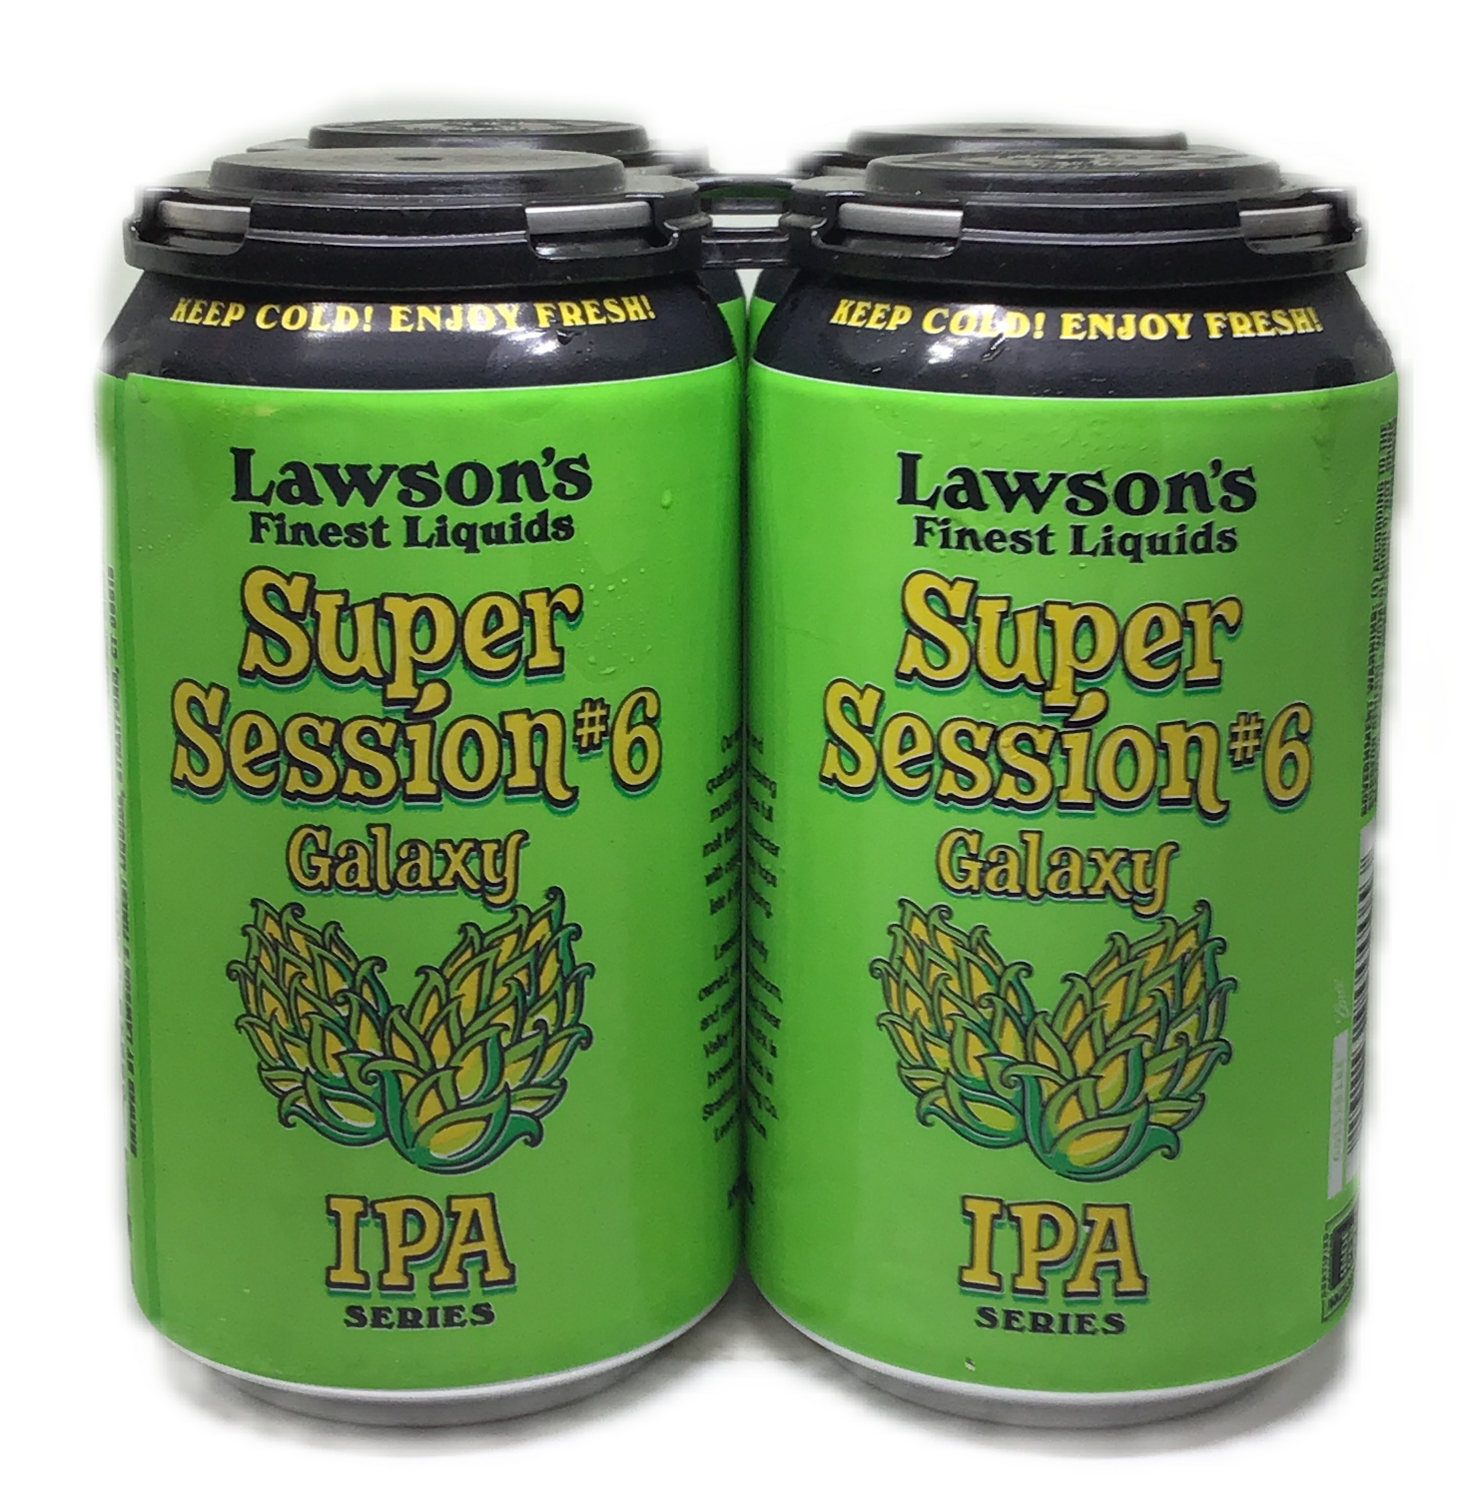 4-PACK Lawsons Super Session 6